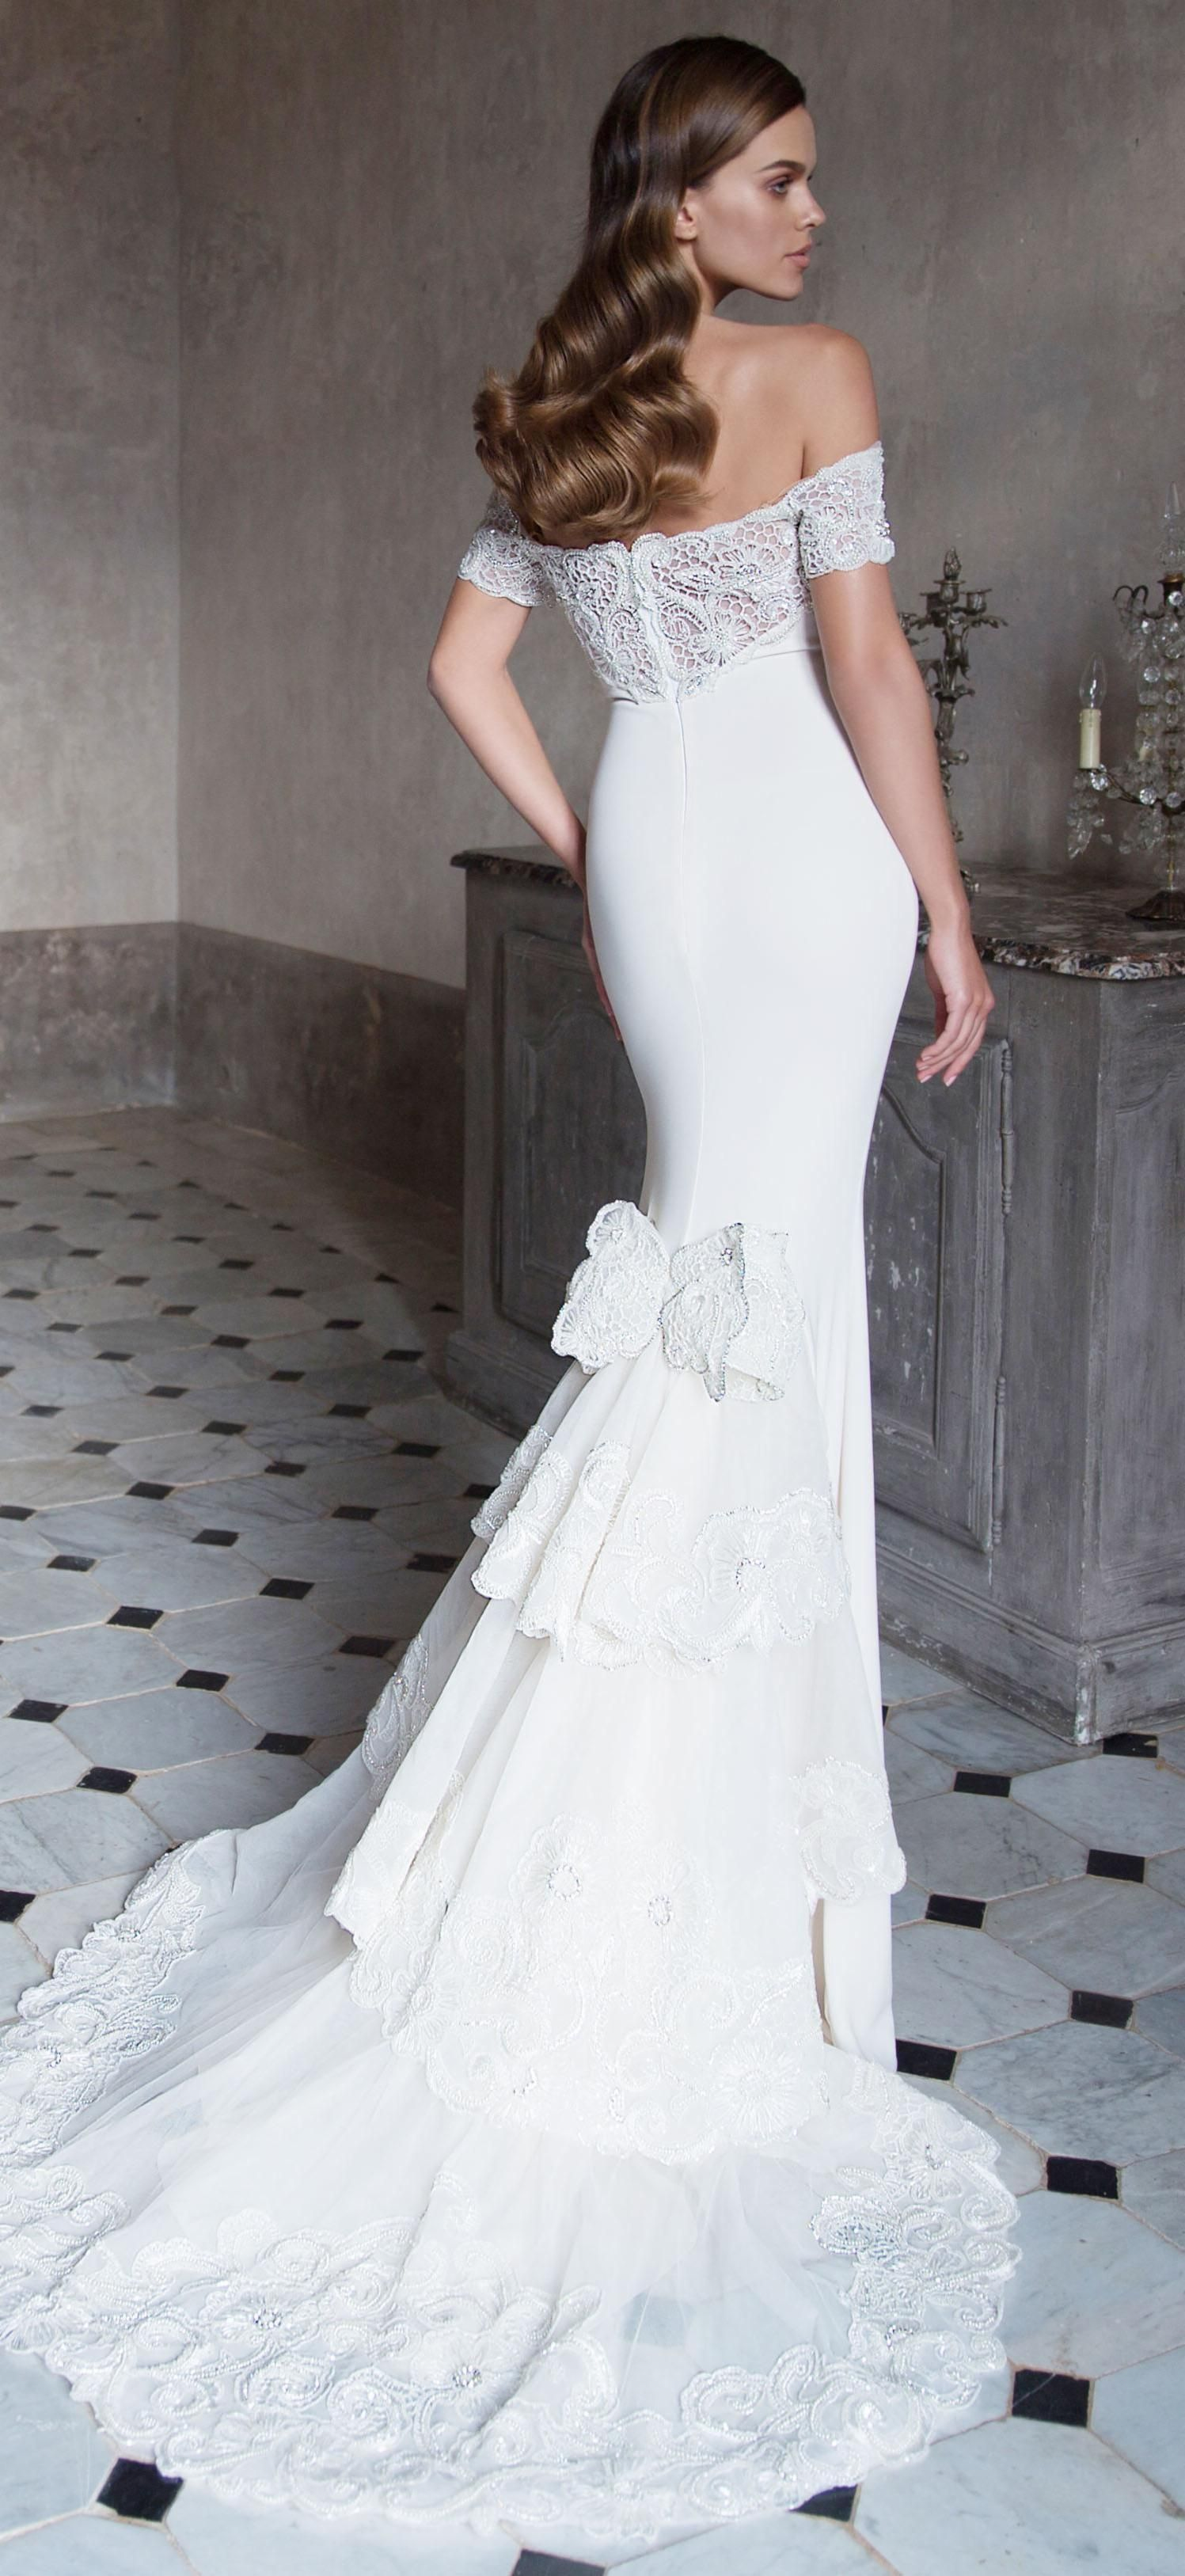 Wedding dress shops in deira dubai  Visit one of our stores Deira City Center and Mall of the Emirates